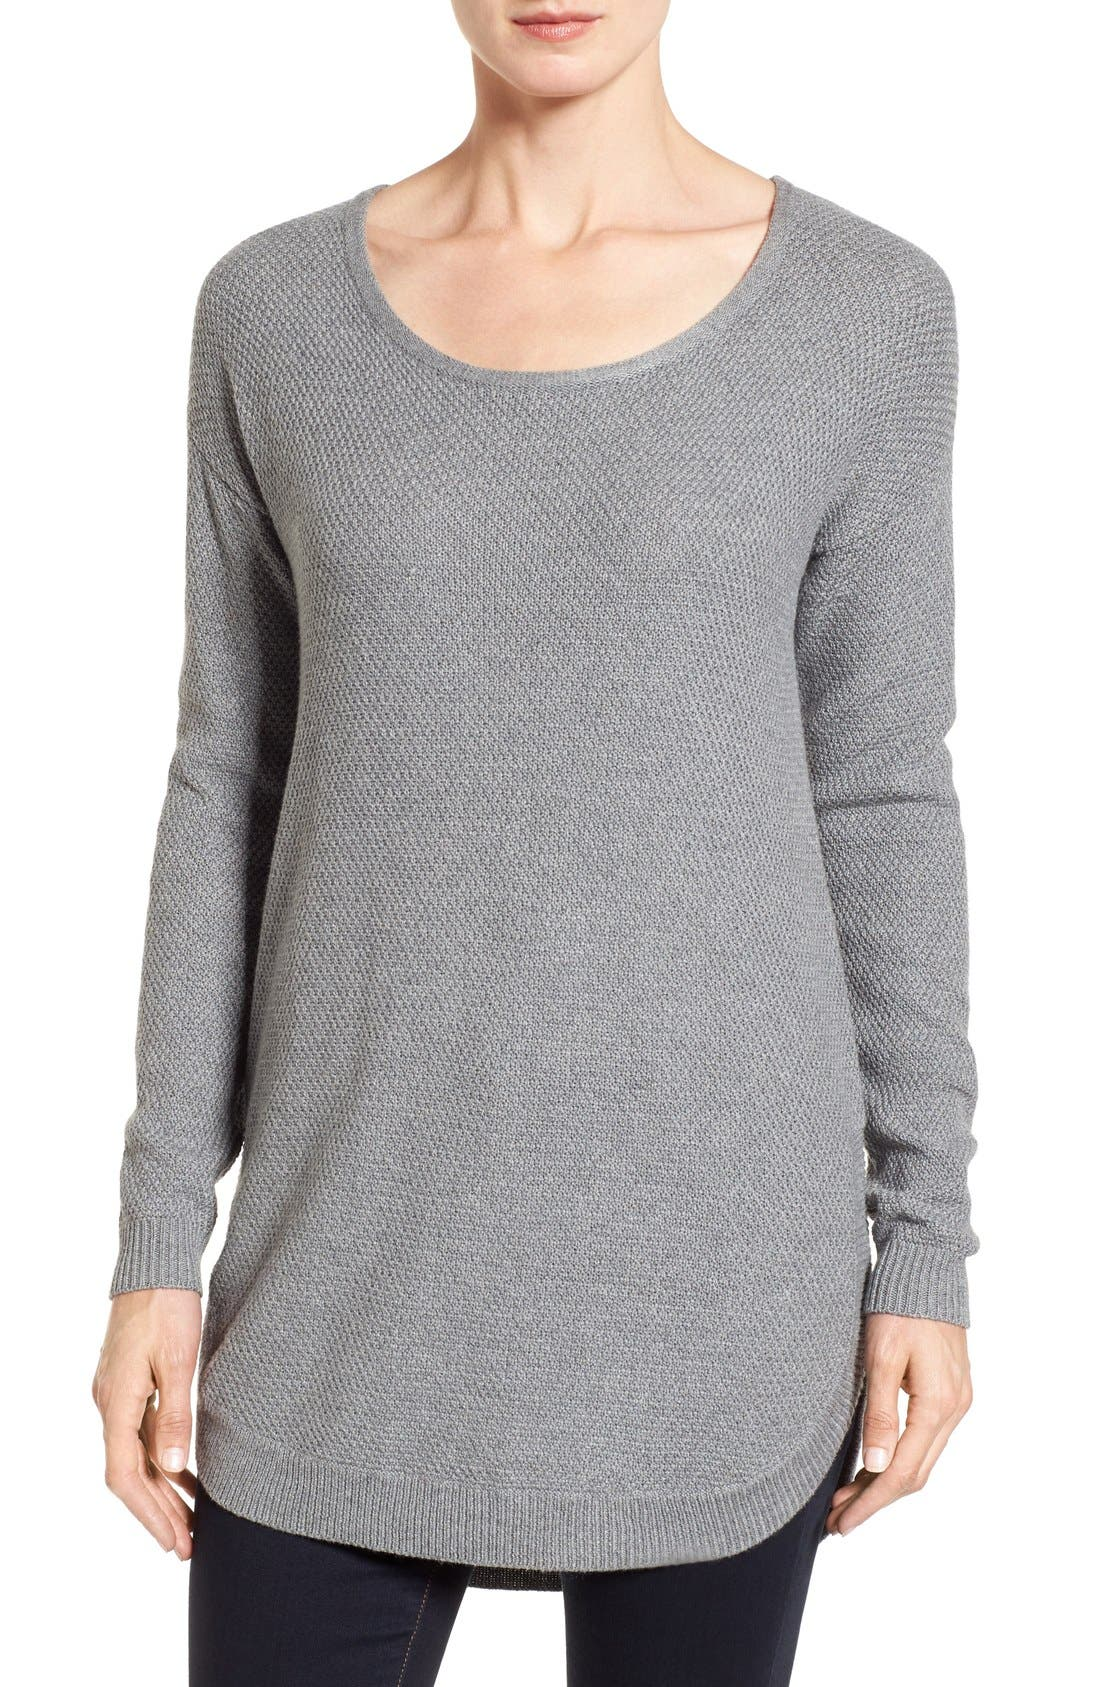 Alternate Image 1 Selected - Caslon® Texture Knit Tunic (Regular & Petite)